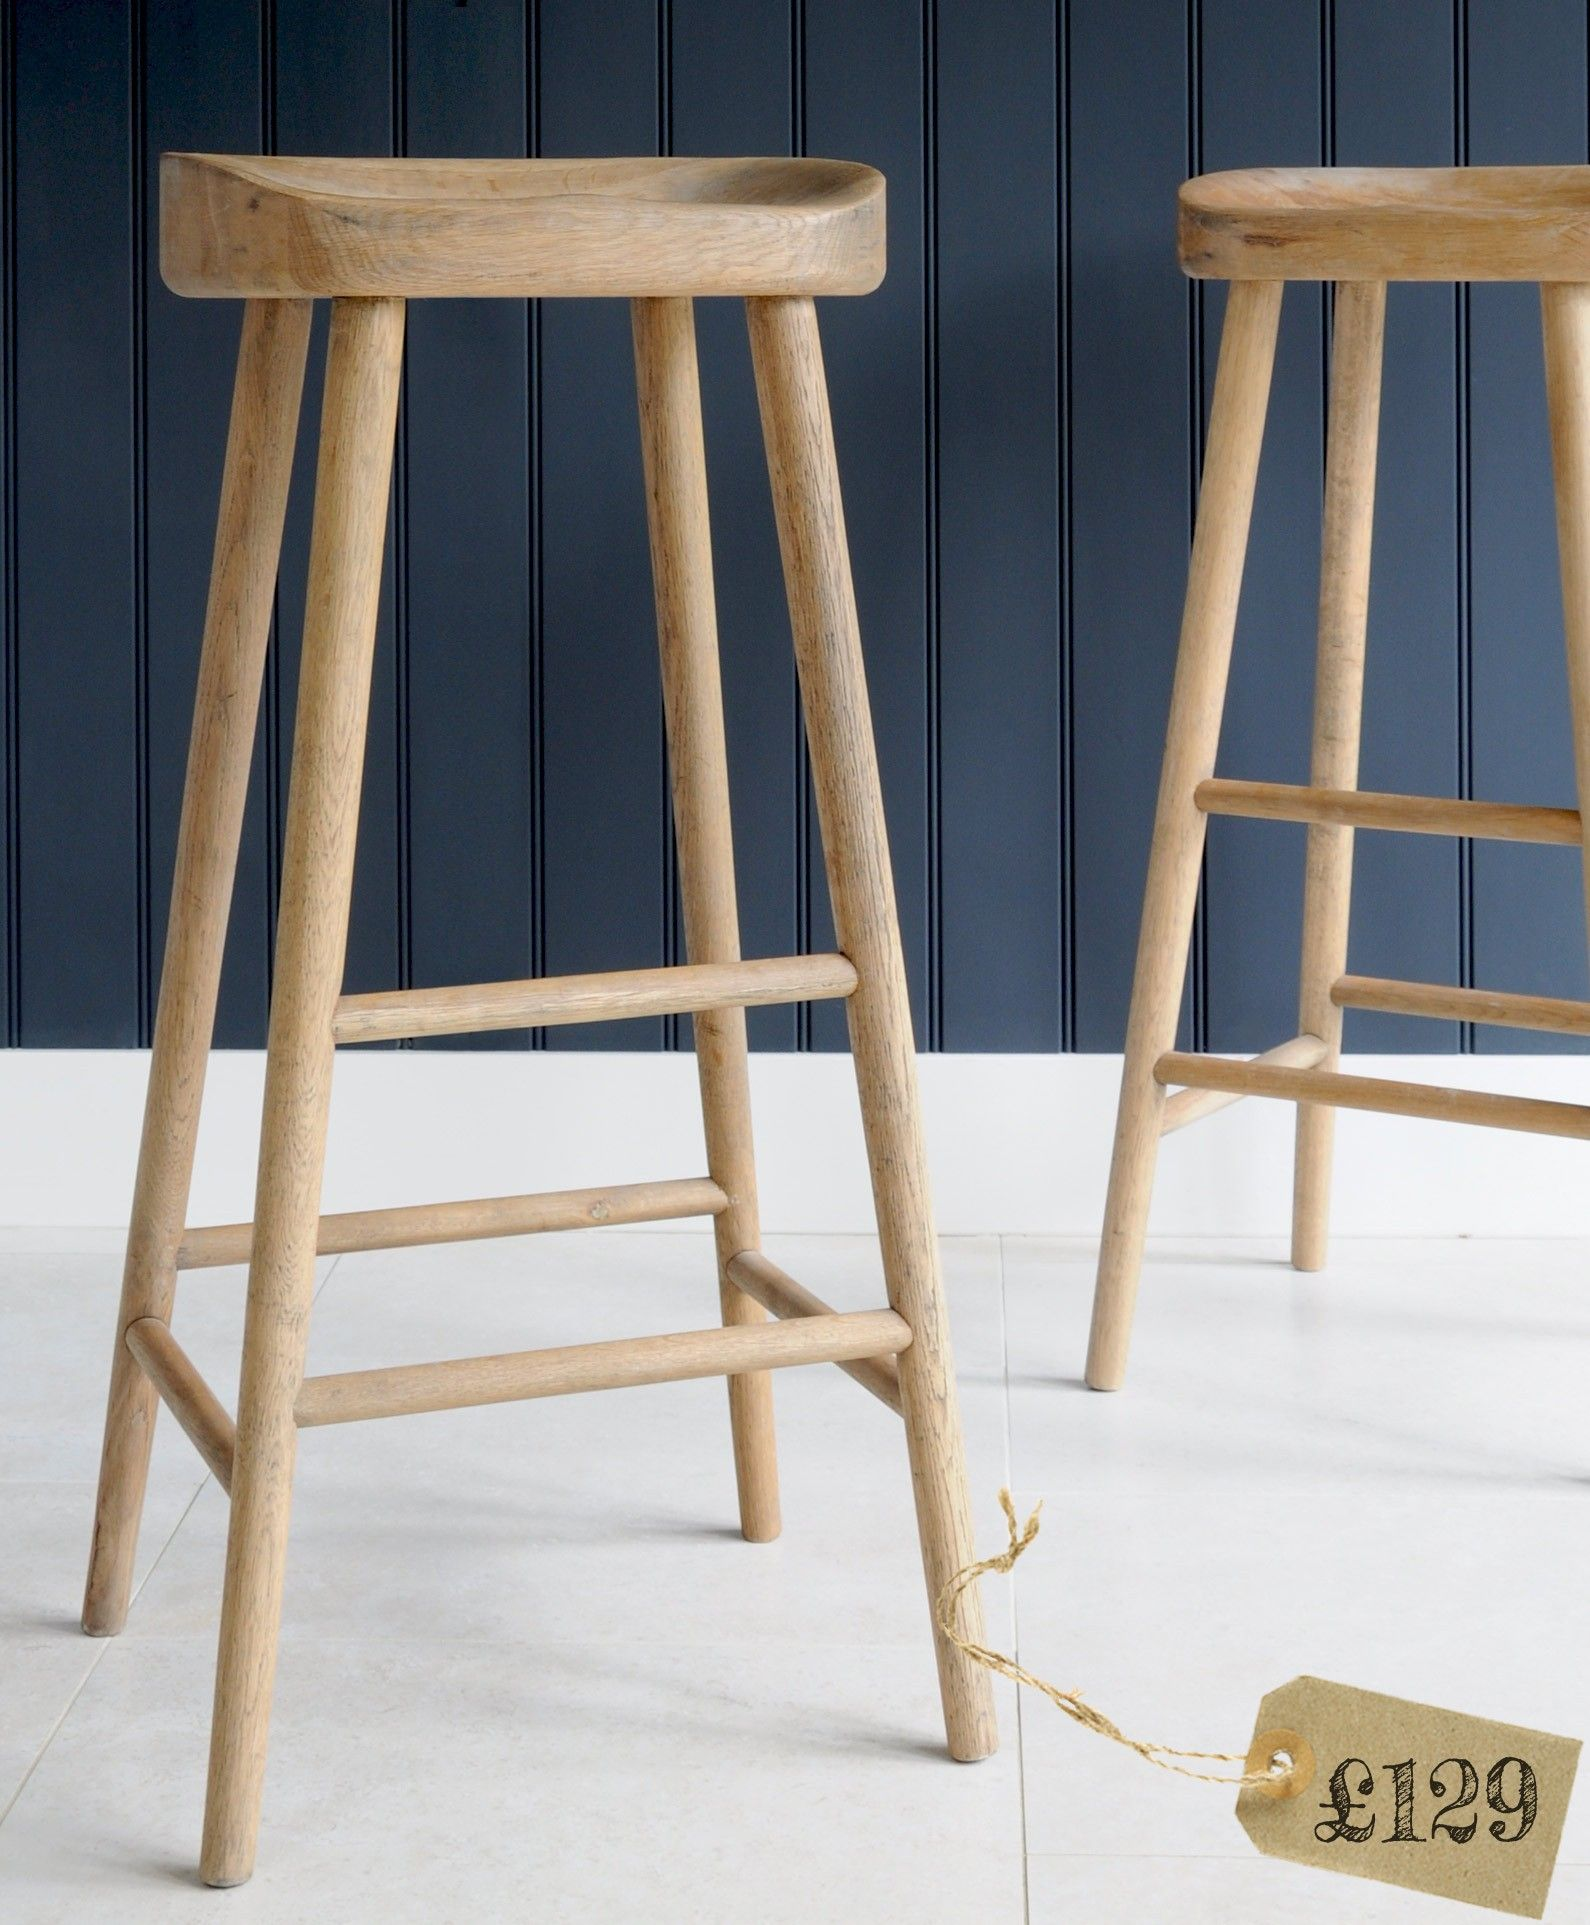 Bailey Weathered Oak Bar Stool Dimensions W 42cm X D 36cm X H